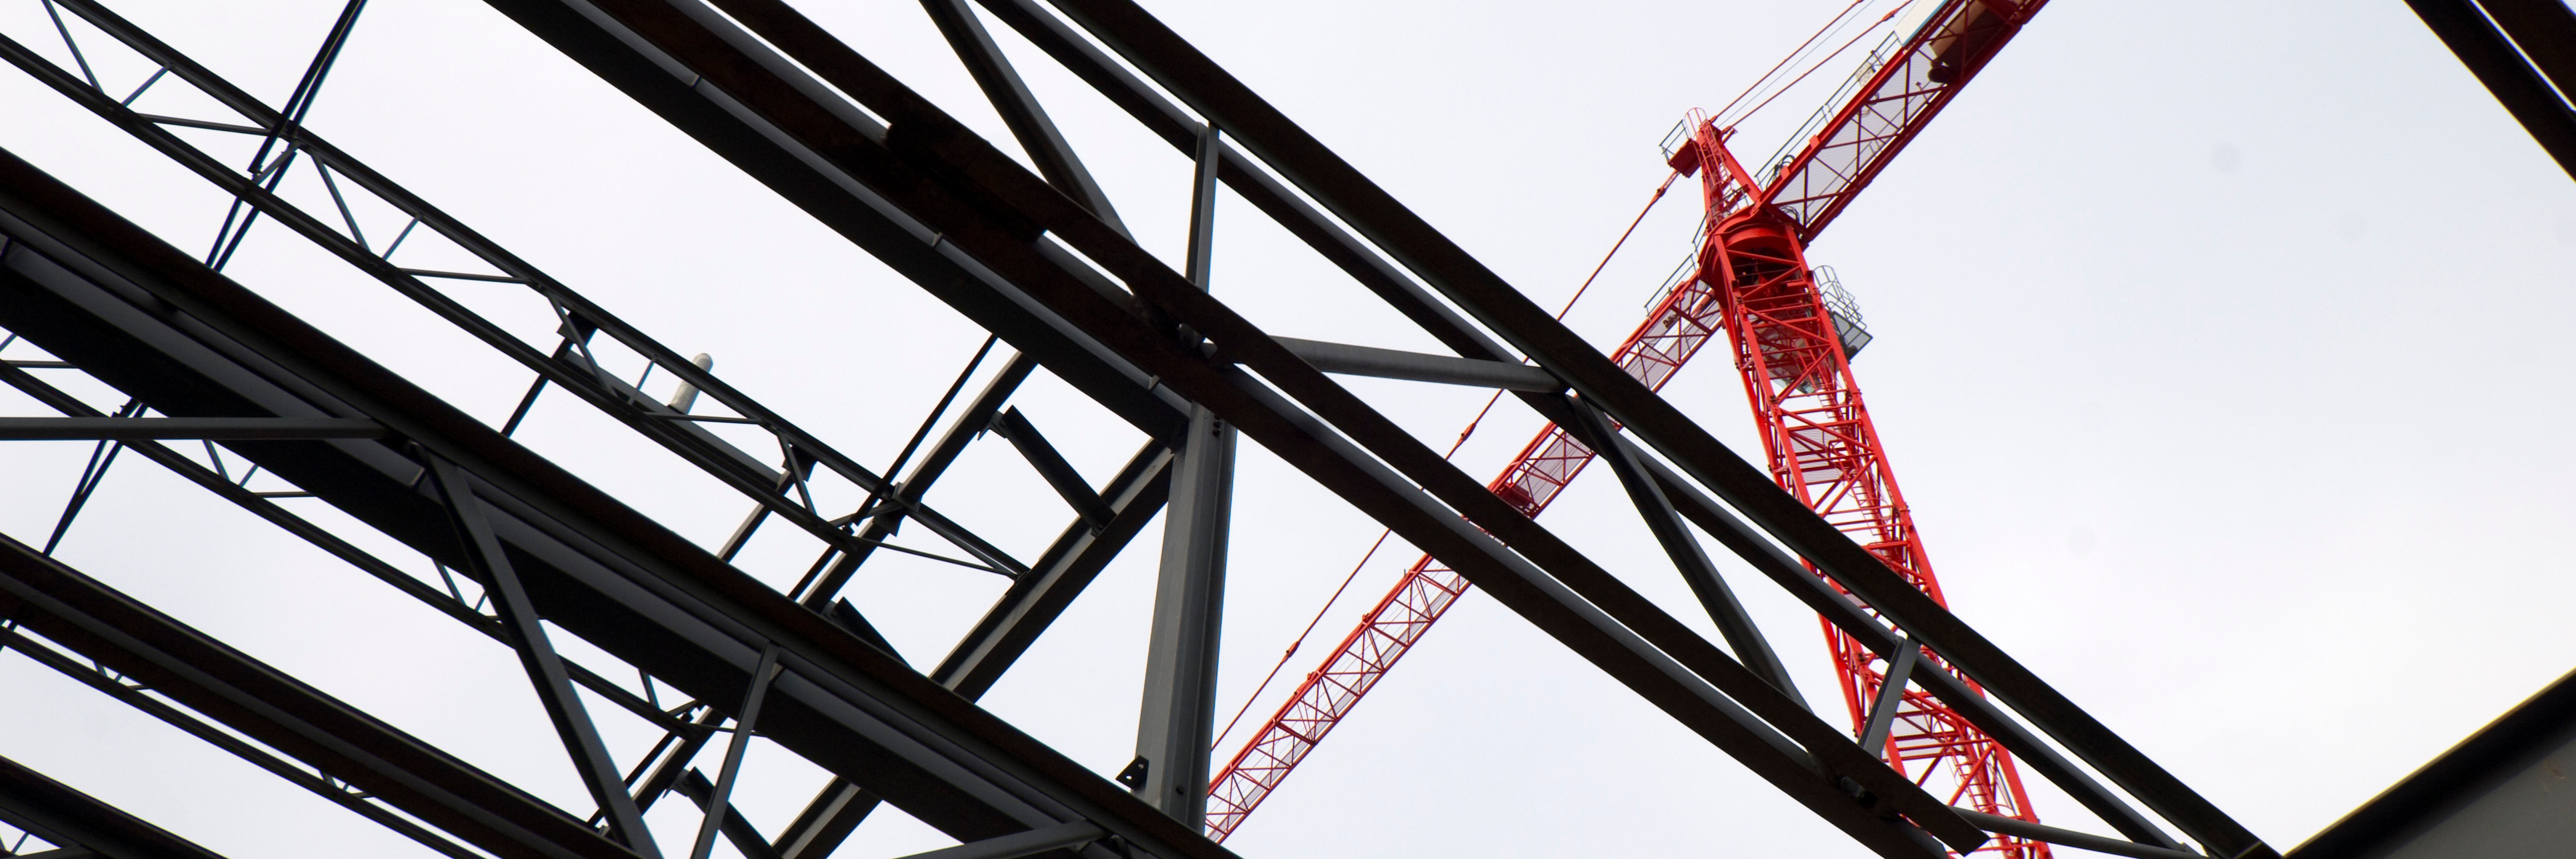 header image construction site